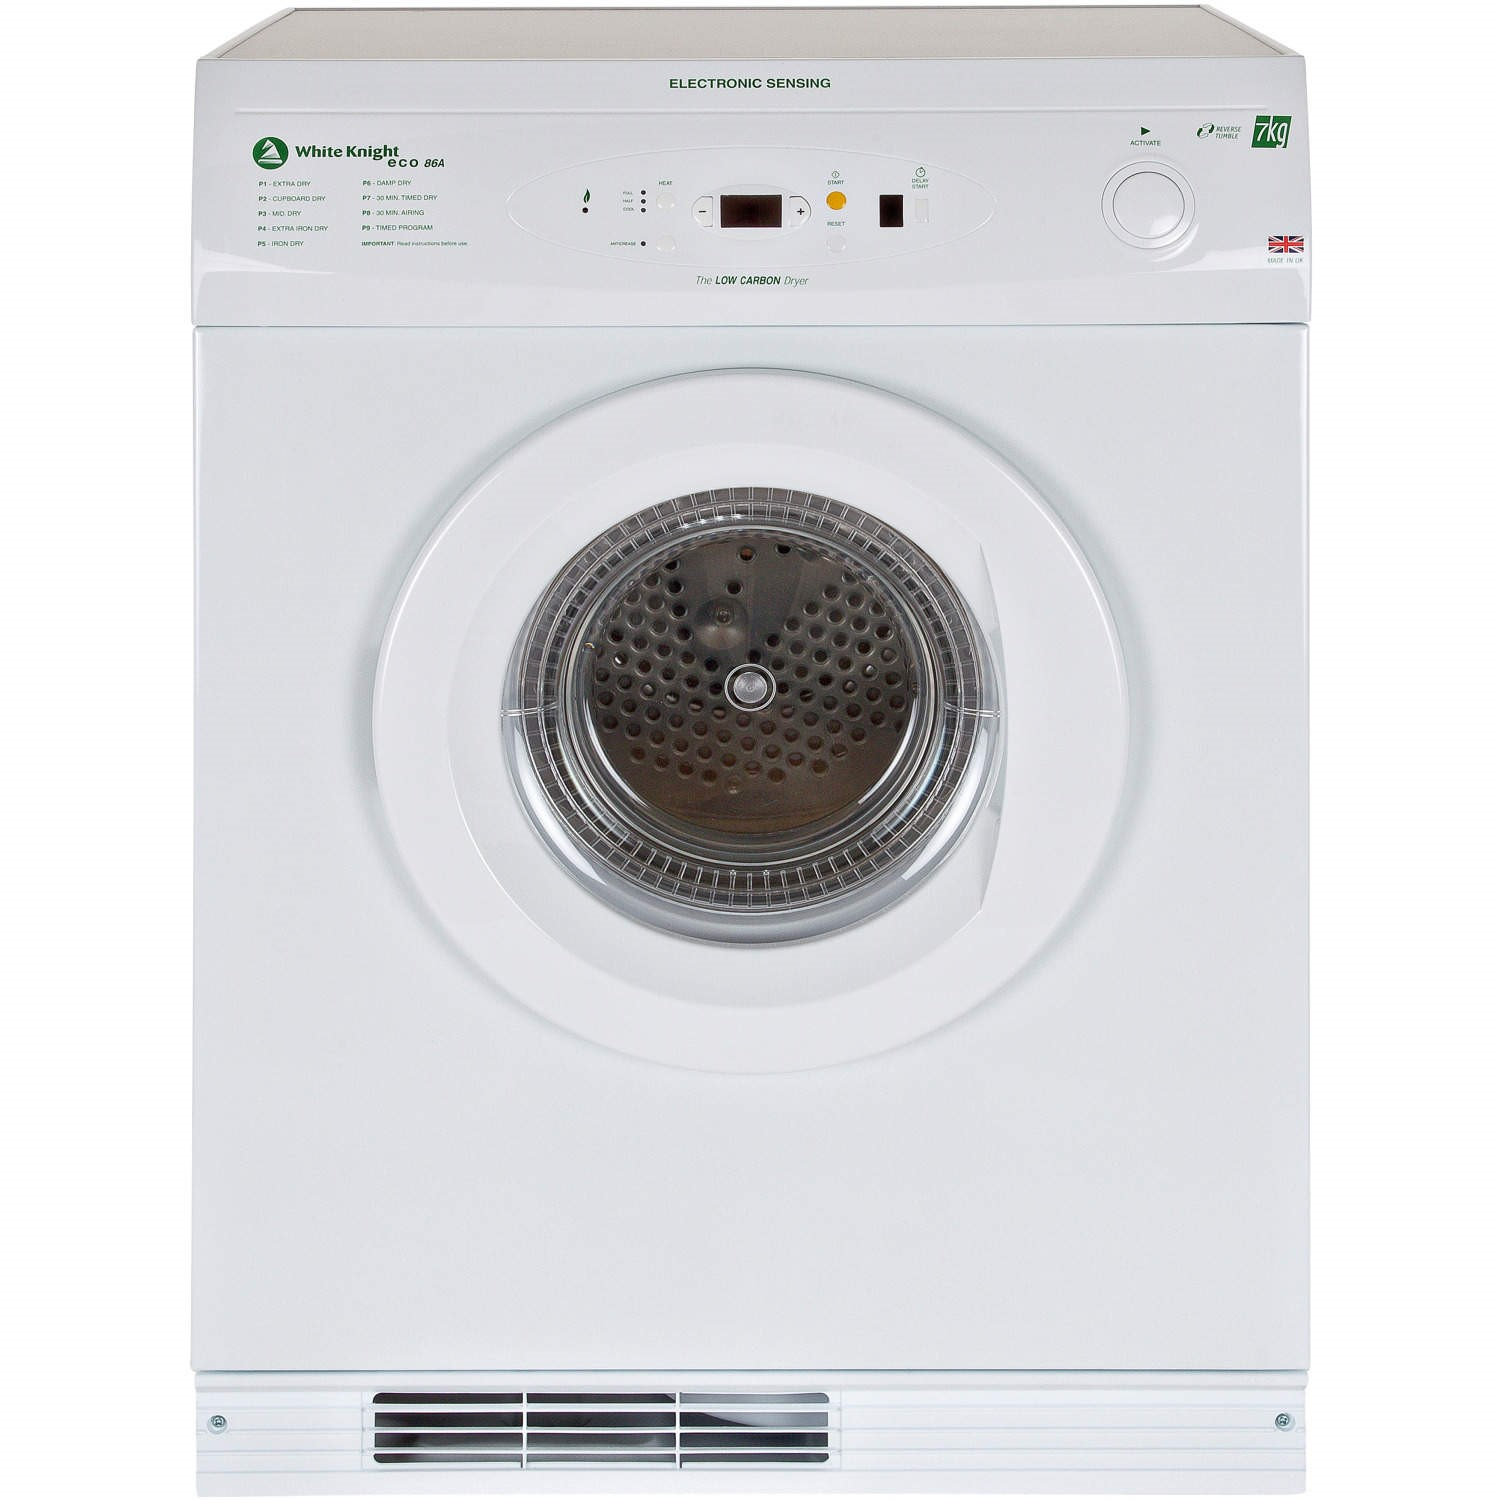 white knight eco86a 7kg freestanding vented gas tumble dryer white rh appliancesdirect co uk white knight condenser tumble dryer manual white knight condenser tumble dryer manual